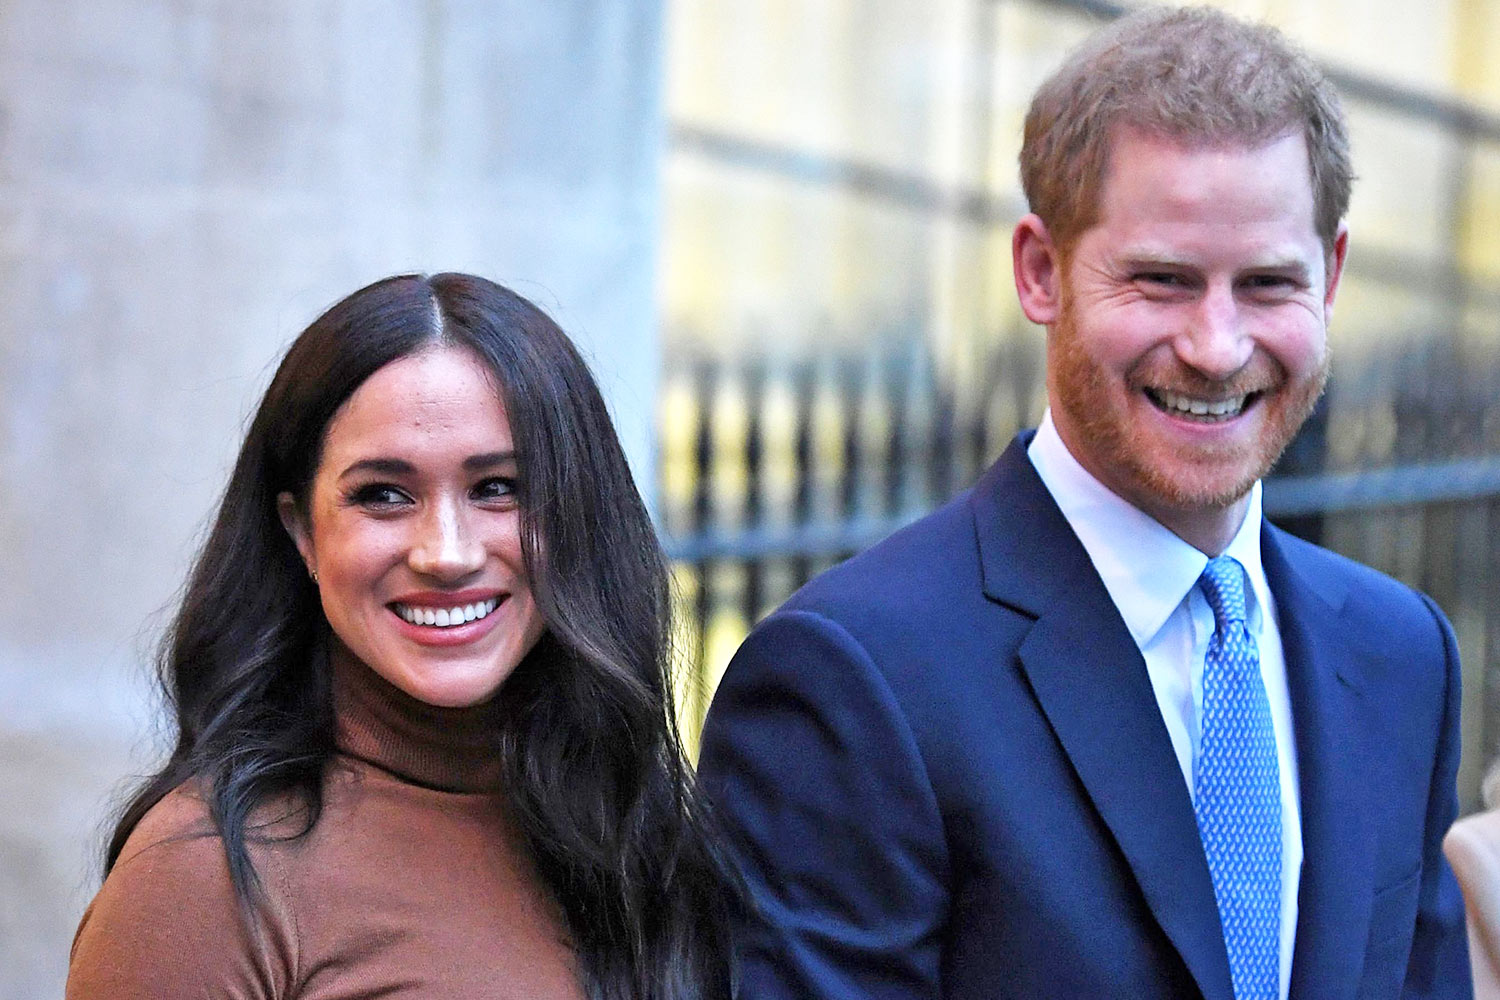 Prince Harry Caught Flirting with Sporty Brunette Making Meghan Markle Frustrated!